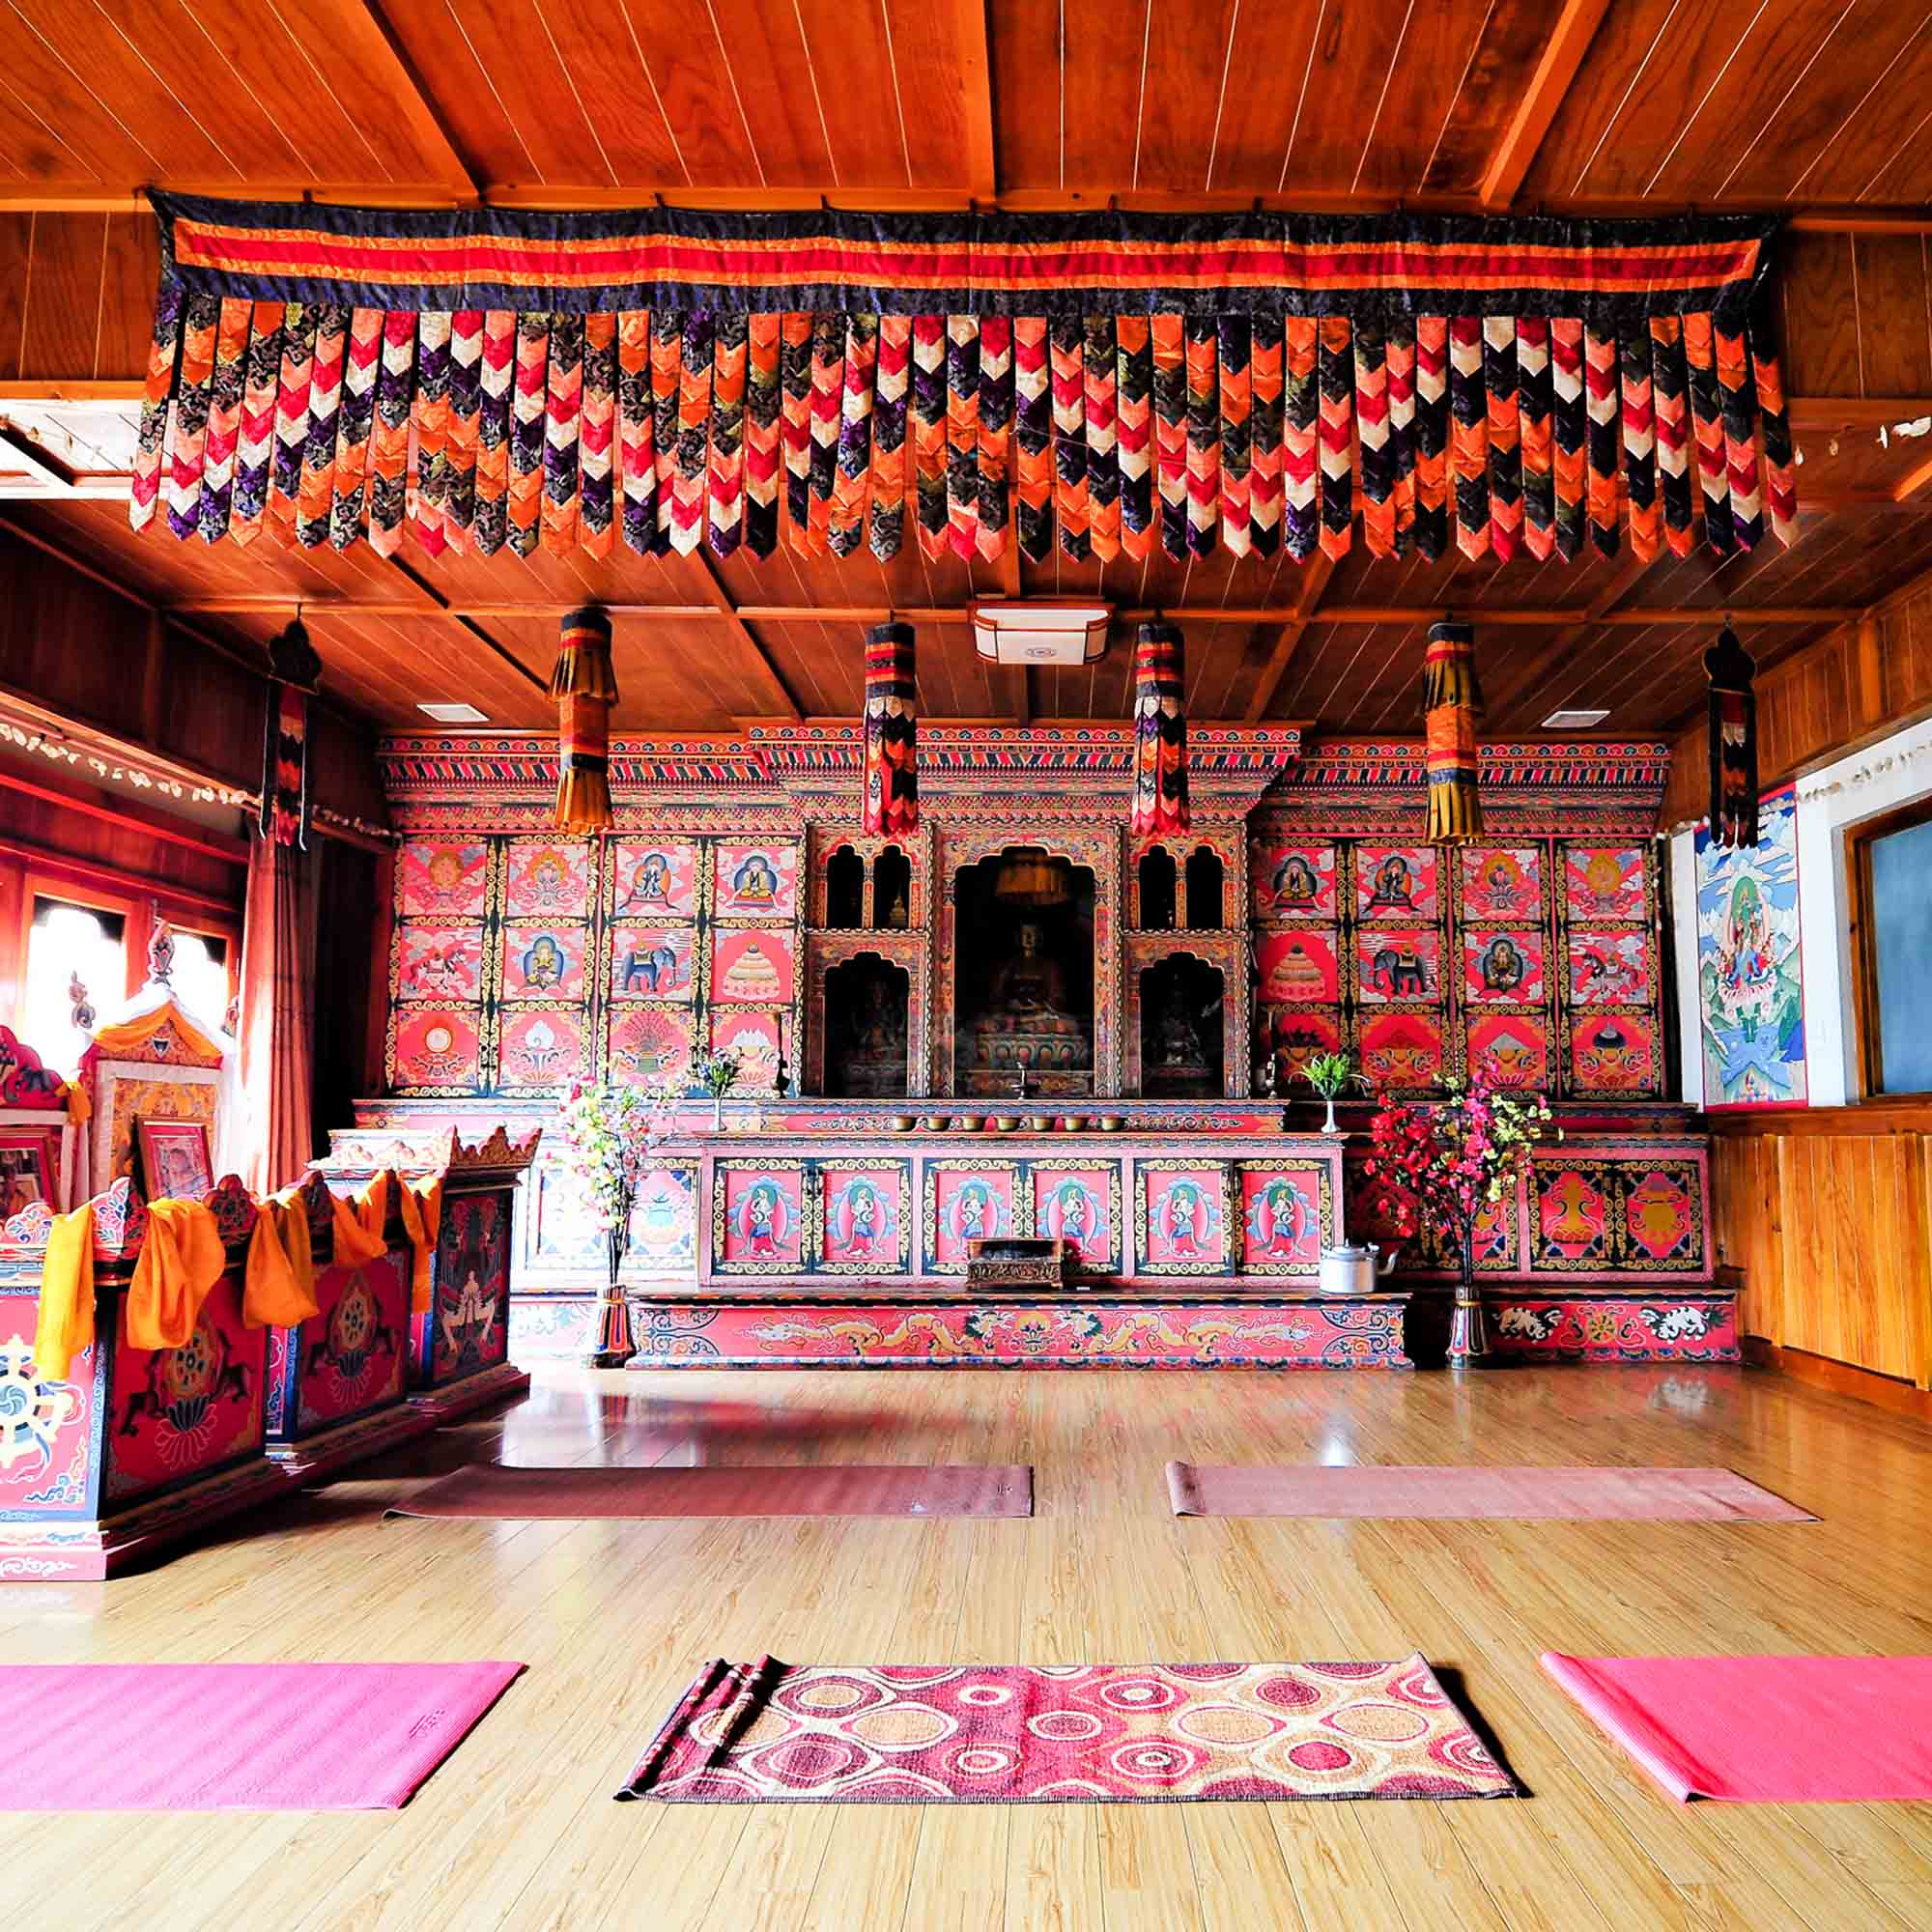 Why visit Bumthang?